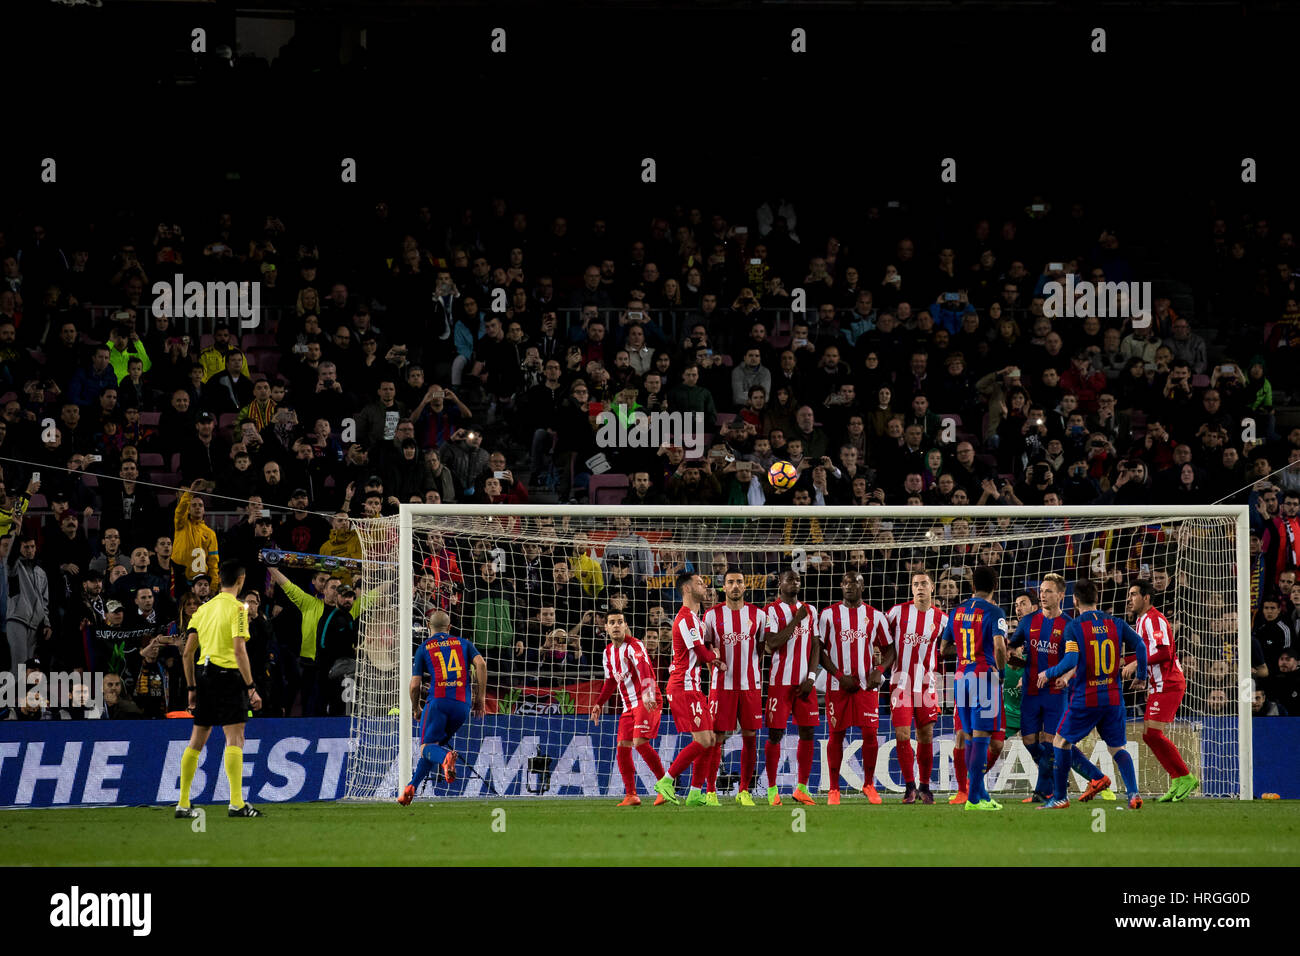 Camp Not Stadium, Barcelona, Spain. 1st March, 2017. Foult kick off Messi at Camp Nou Stadium, Barcelona, Spain. - Stock Image